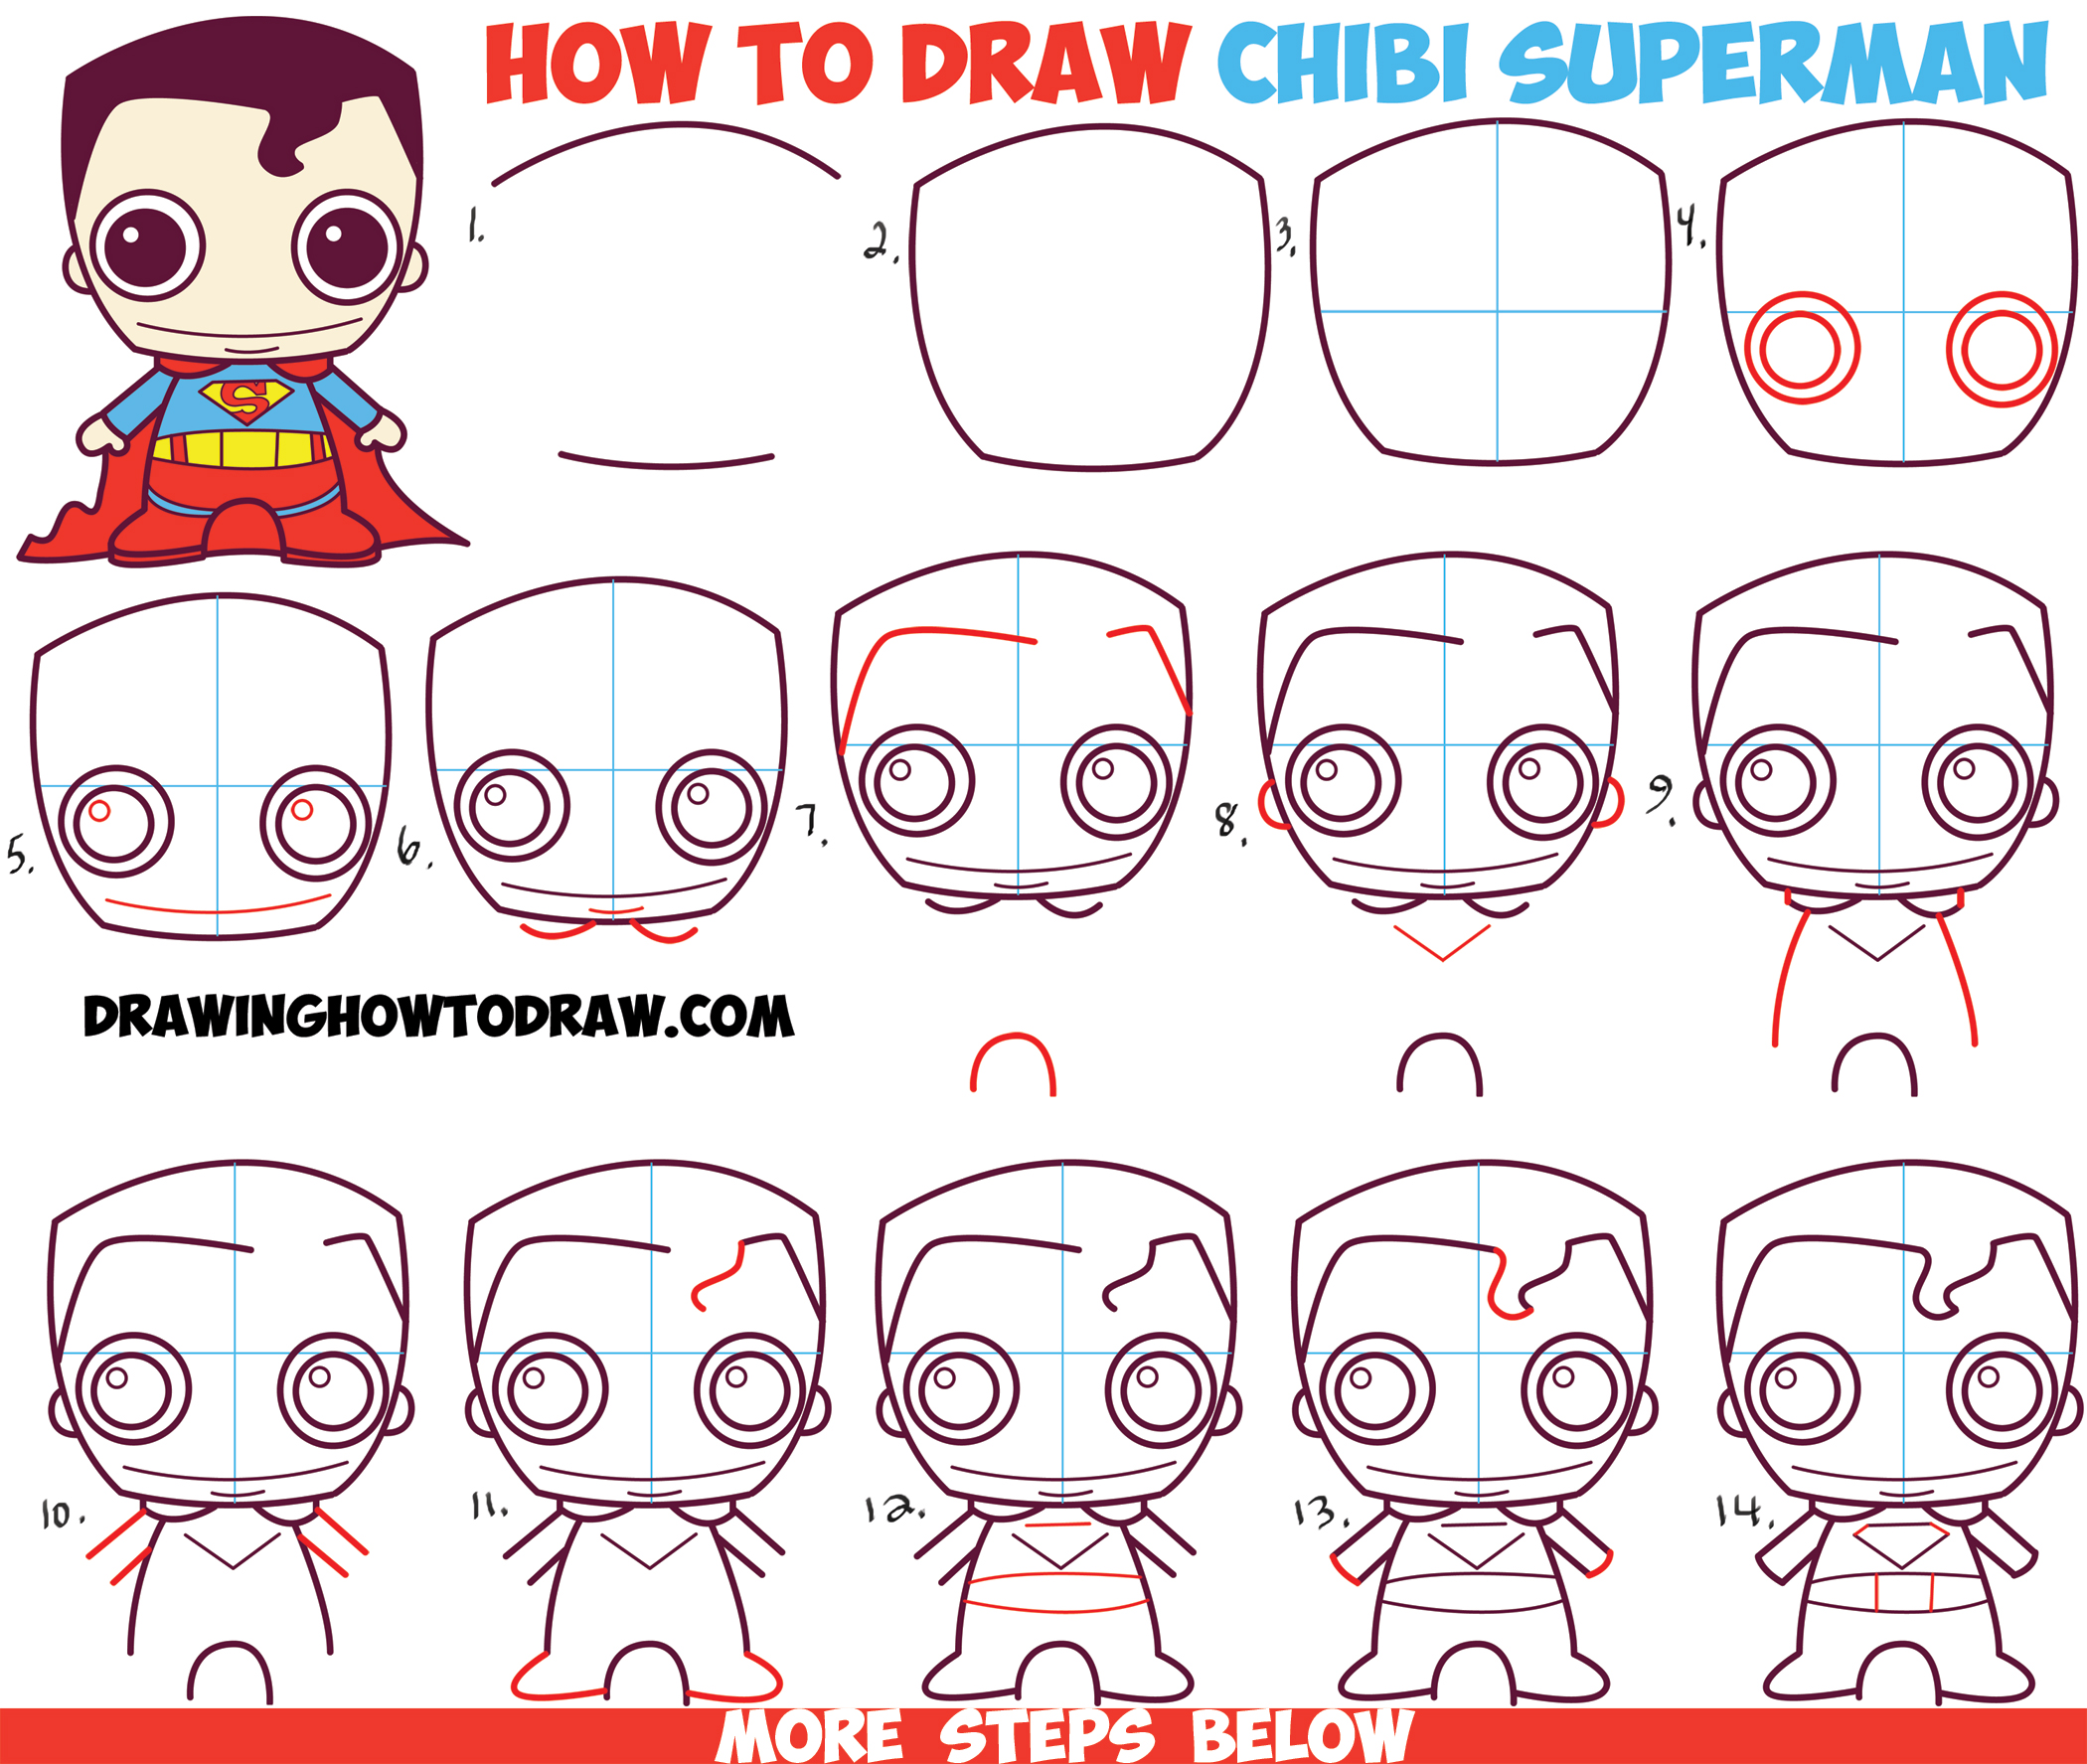 How to Draw Cute Chibi Superman from DC Comics in Easy Step by Step Drawing Tutorial for Kids